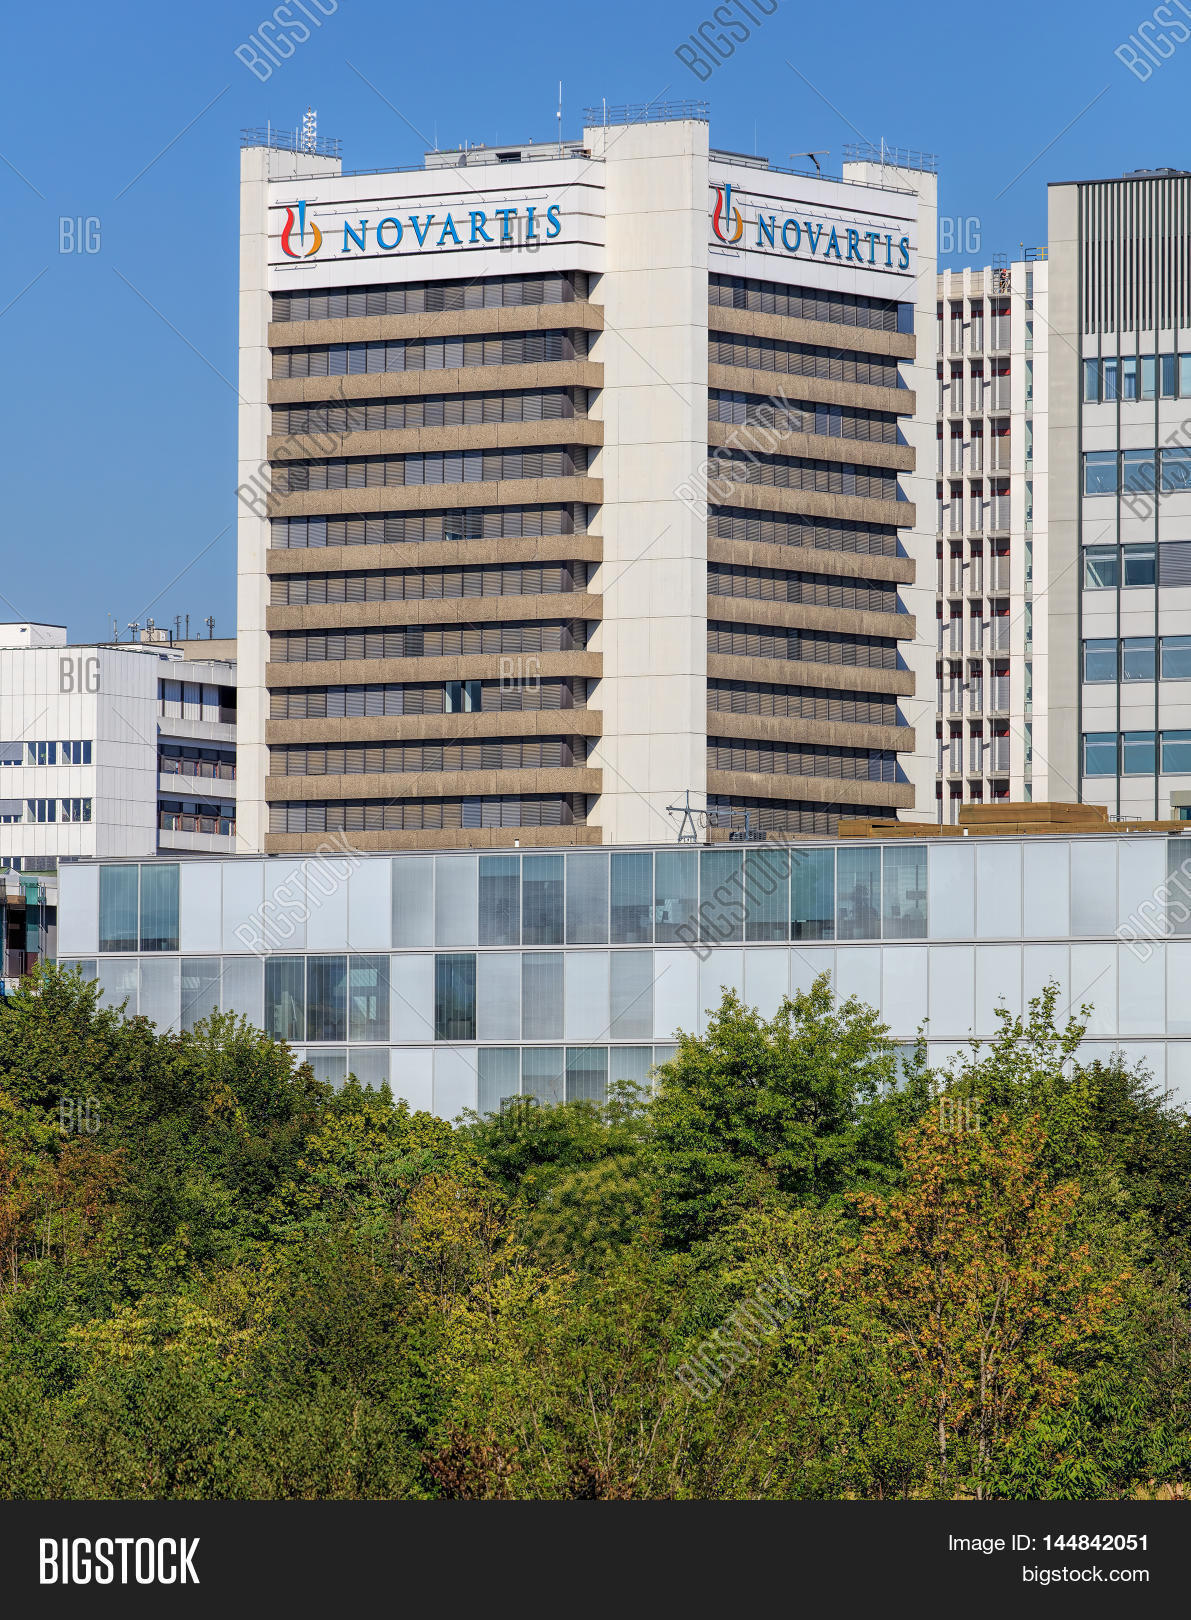 novartis international ag Novartis international ag company research & investing information find executives and the latest company news.